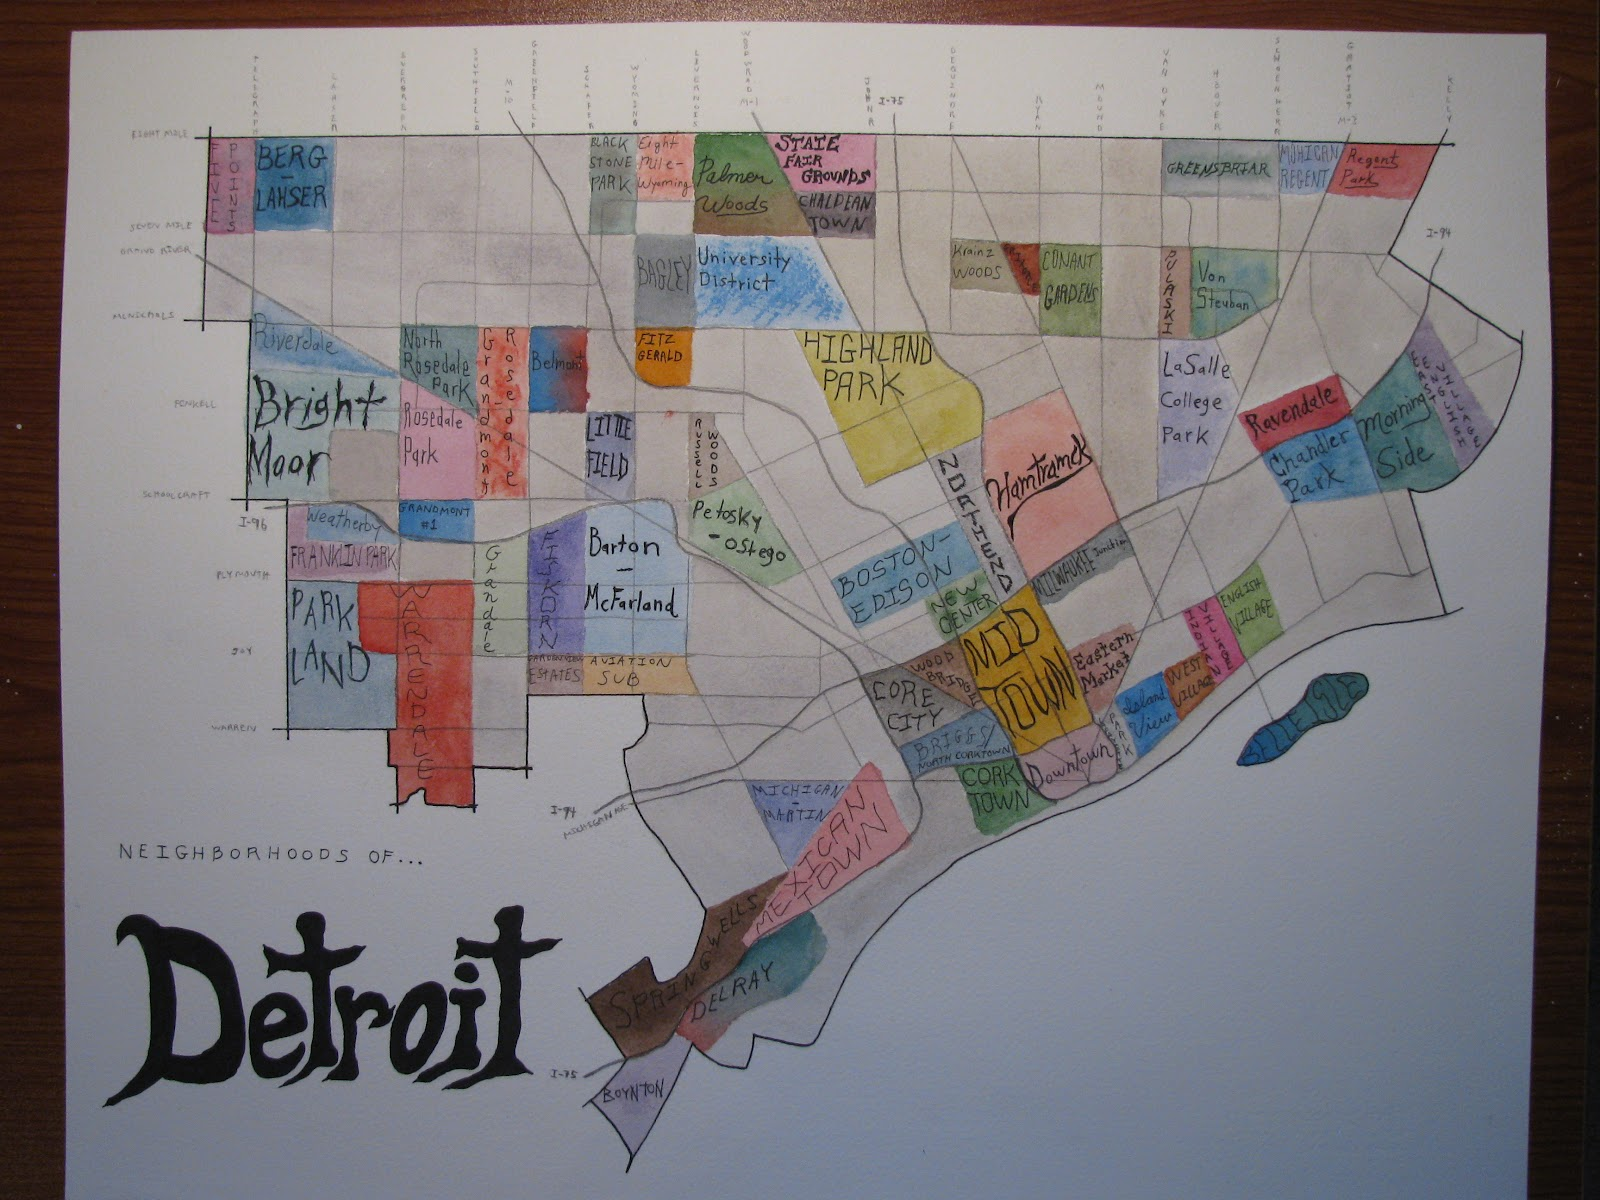 Sean Dufty: Detroit Map on map of delaware, map of new york, map of midwest, map of chicago, map of harper woods, map of great lakes, map of miami, map of olivet, map of san jose, map of 8 mile, map of caro, map of giants, map of highland park, map of vassar, map of boston, map of pauls valley, map of toronto, map of tampa, map of auburn hills, map of michigan,